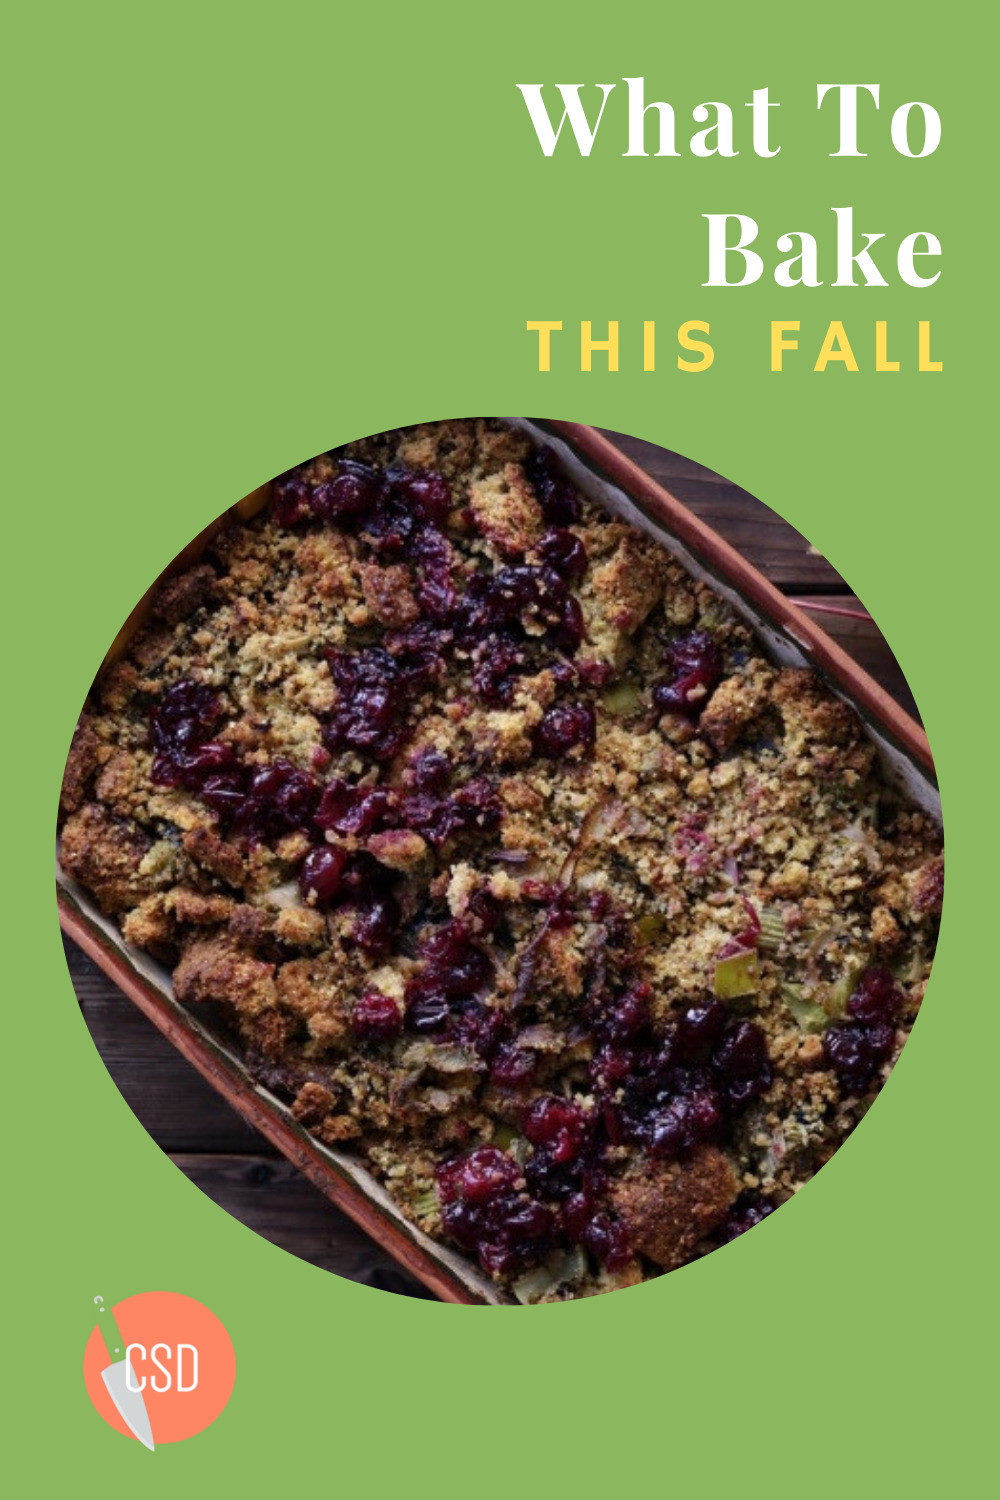 Cutsidedown.com will help you wow your dinner guests with amazing and easy recipes. Find whatever your palette desires with tons of ideas to choose from. Get cozy inside with these awesome fall time baking recipes!